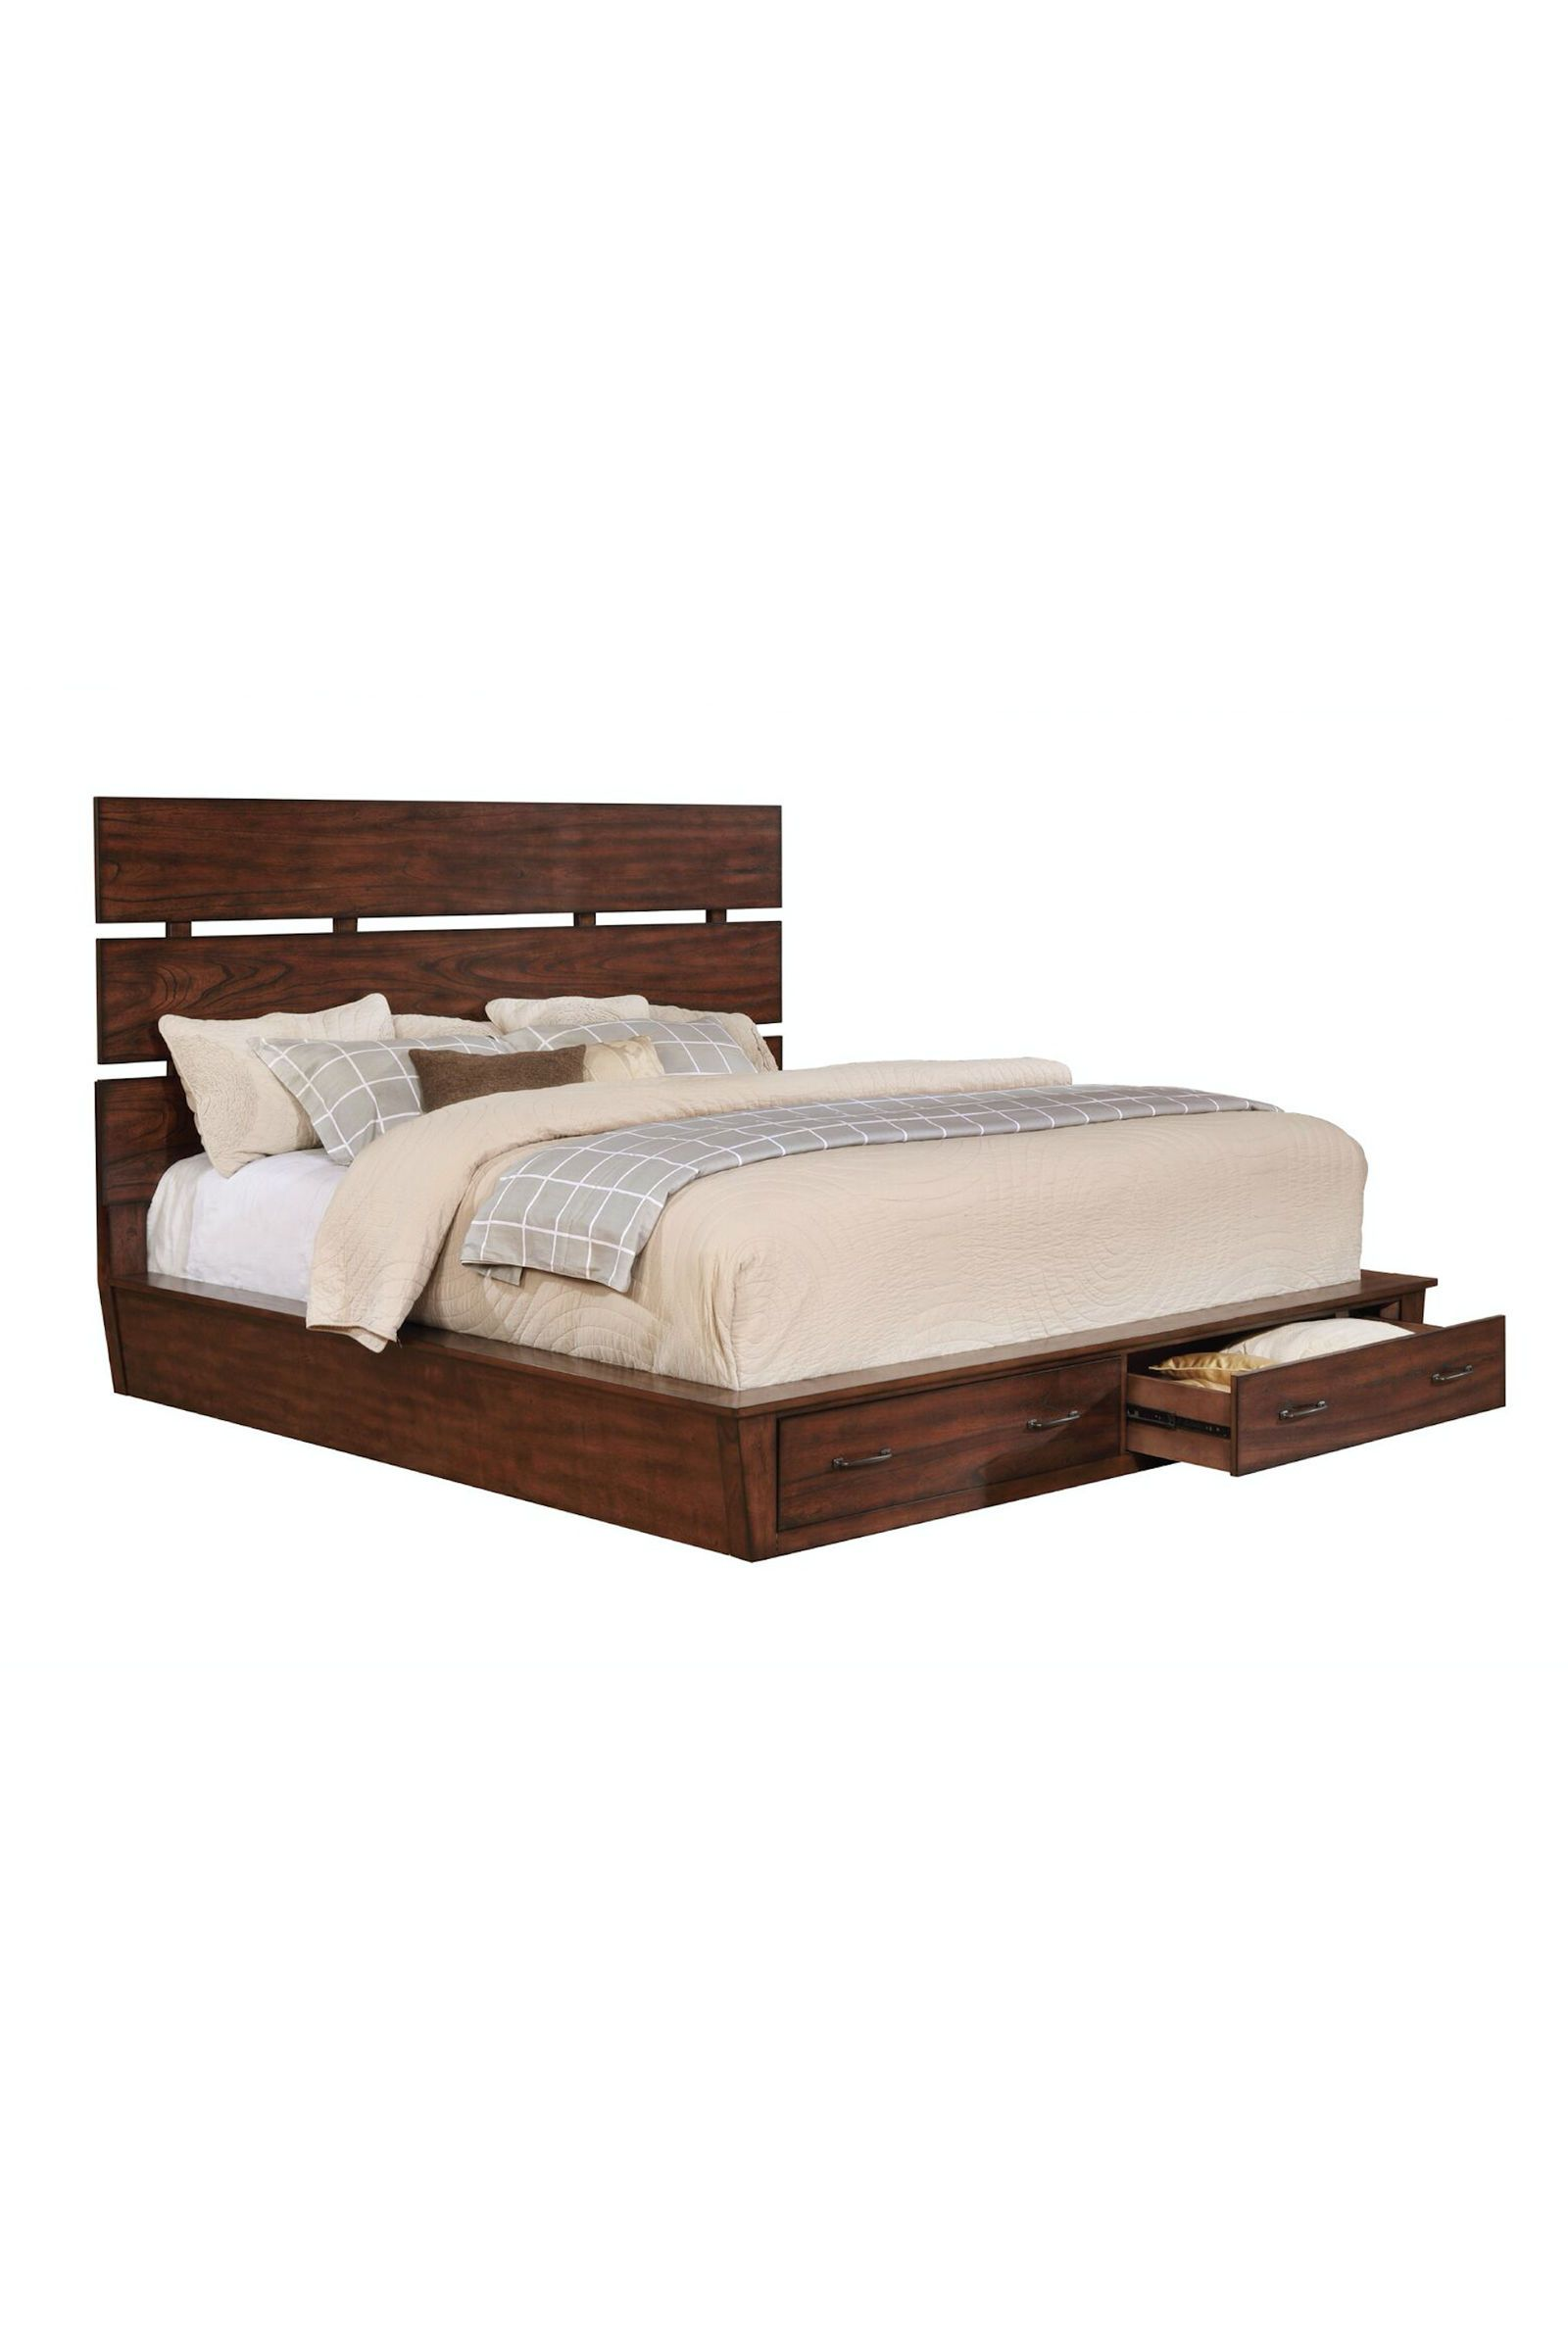 The Property Brothers Have A Brand New Furniture Line And We Are Obsessed California King Platform Bed King Platform Bed Platform Bed With Storage